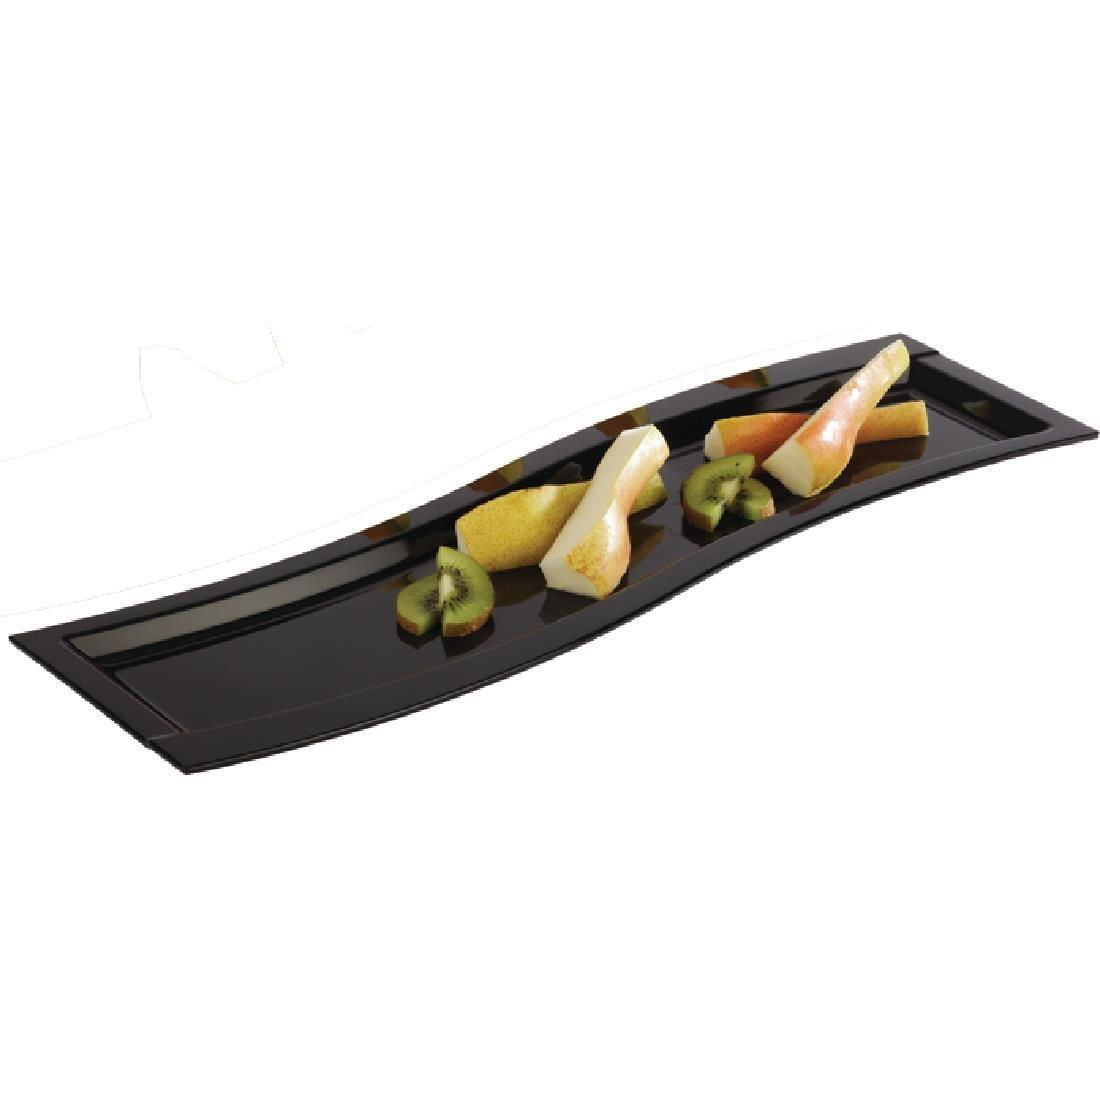 APS Wave Melamine Platter Black GN 2/4 - Each - GK829